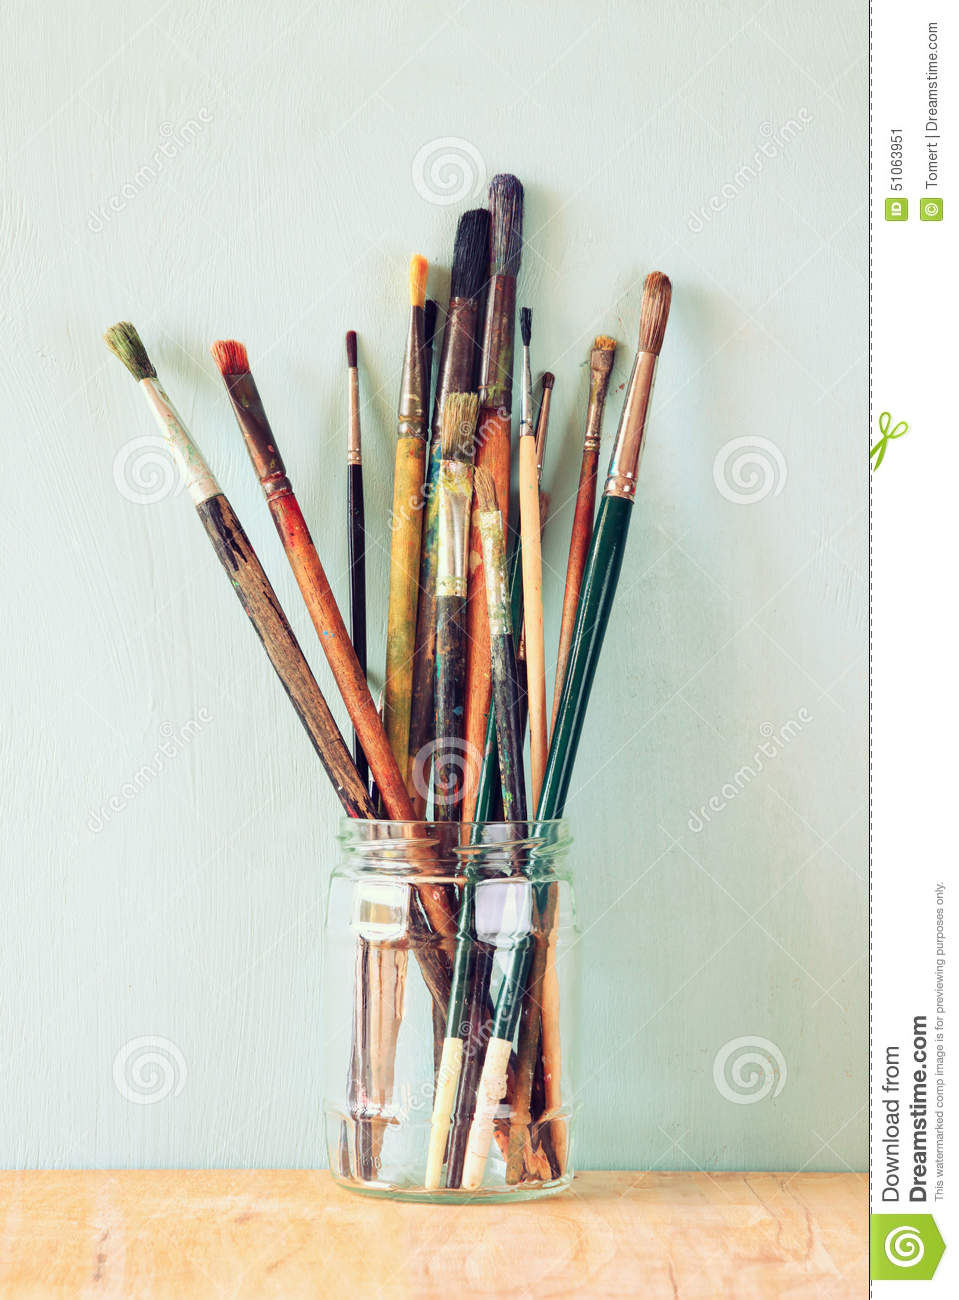 Keywords Paint Brushes In Jar Clipart and Tags.